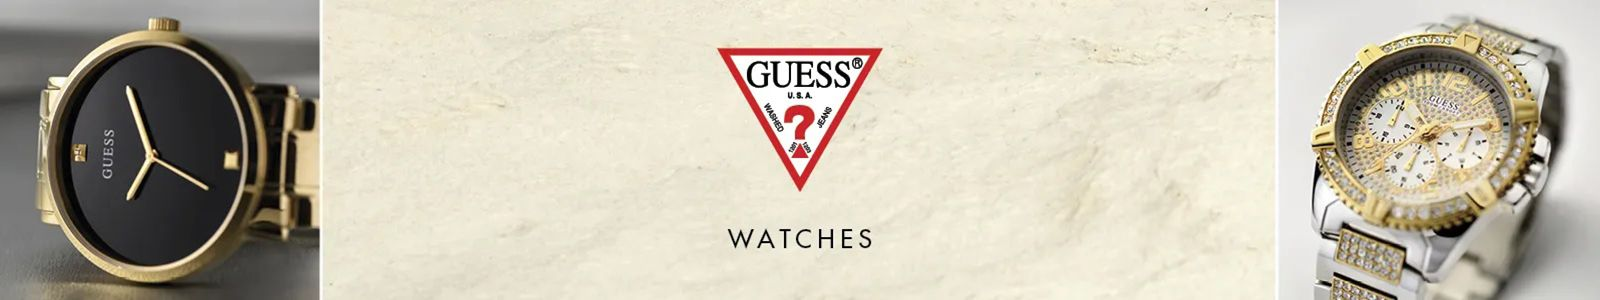 Guess, Watches